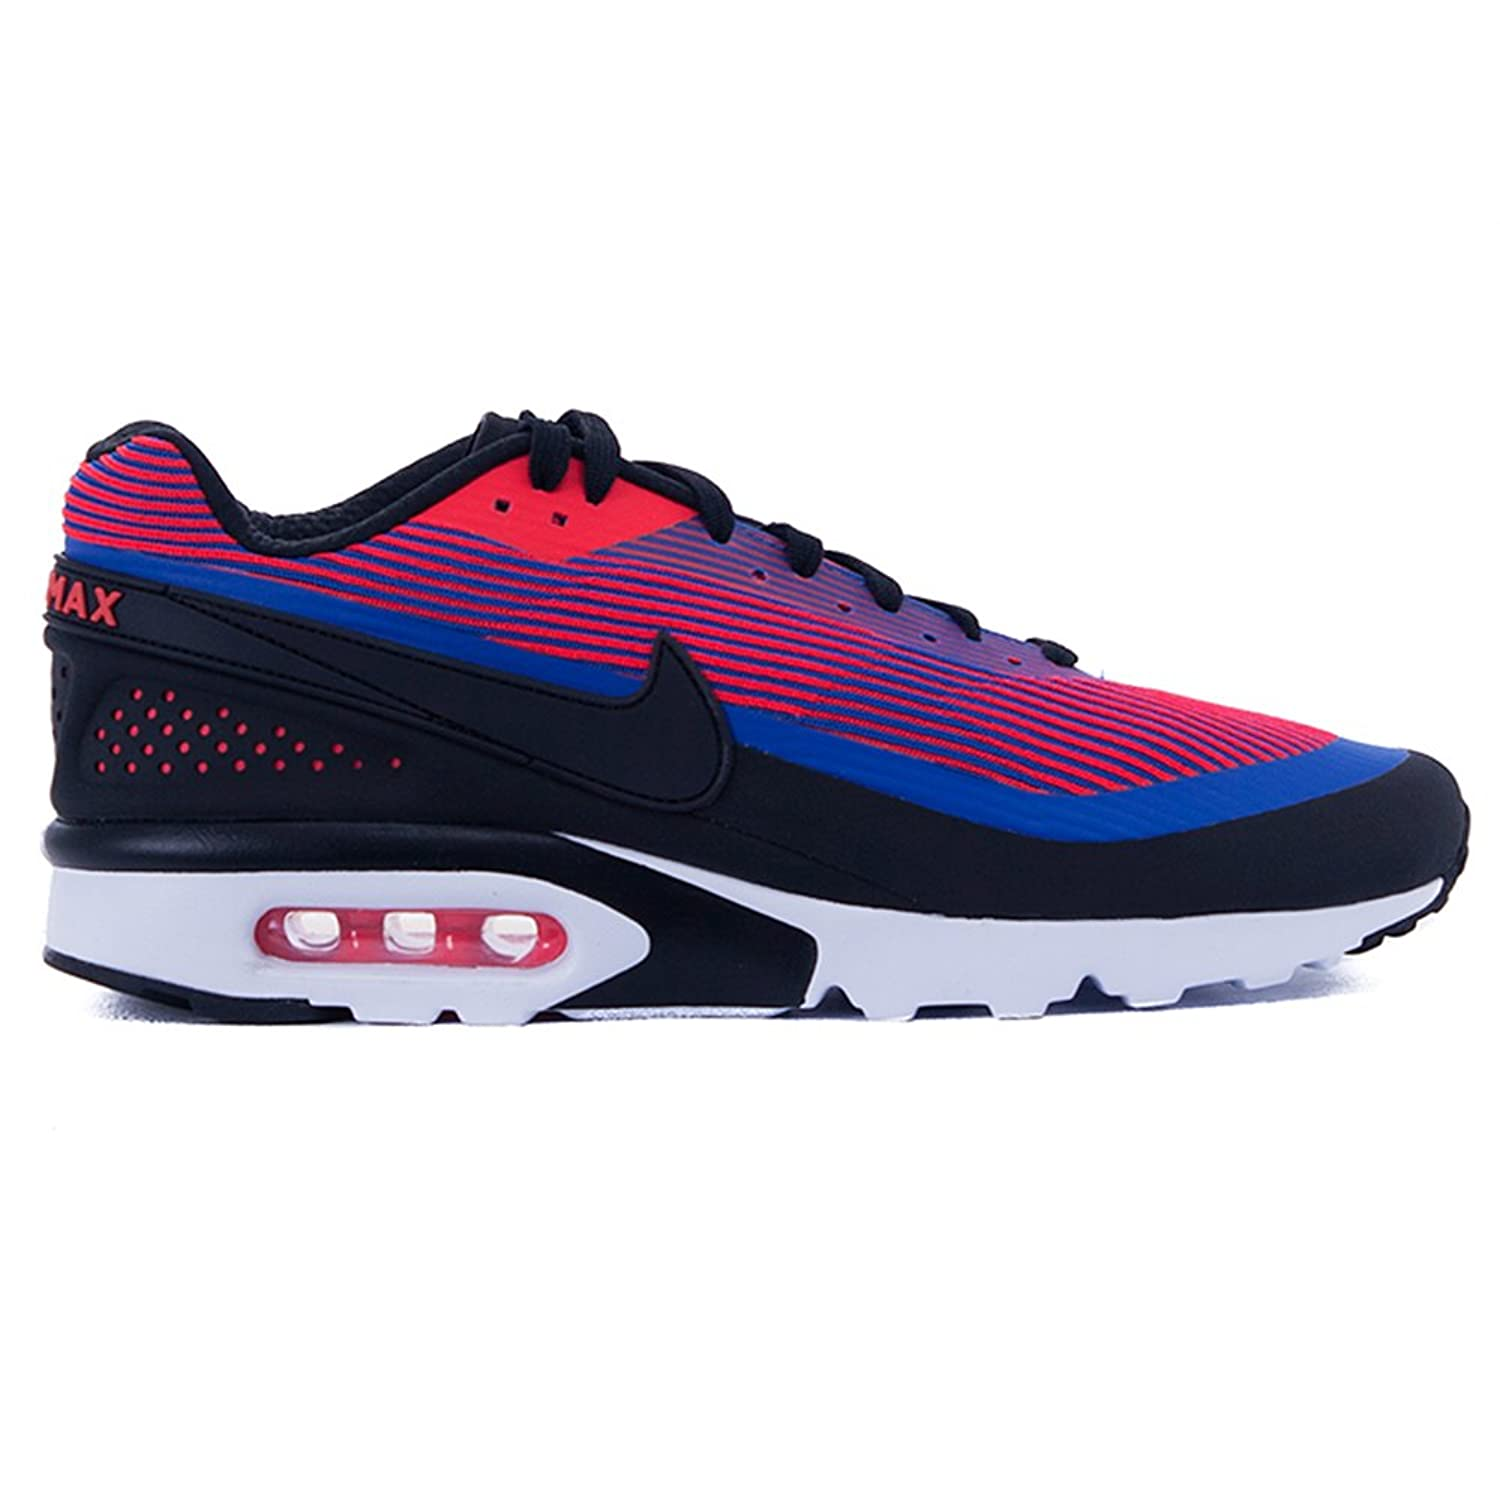 half off 73cfd 41410 Nike Air Max Bw Ultra Kjcrd Prm, Chaussures de Running Entrainement Homme  80%OFF